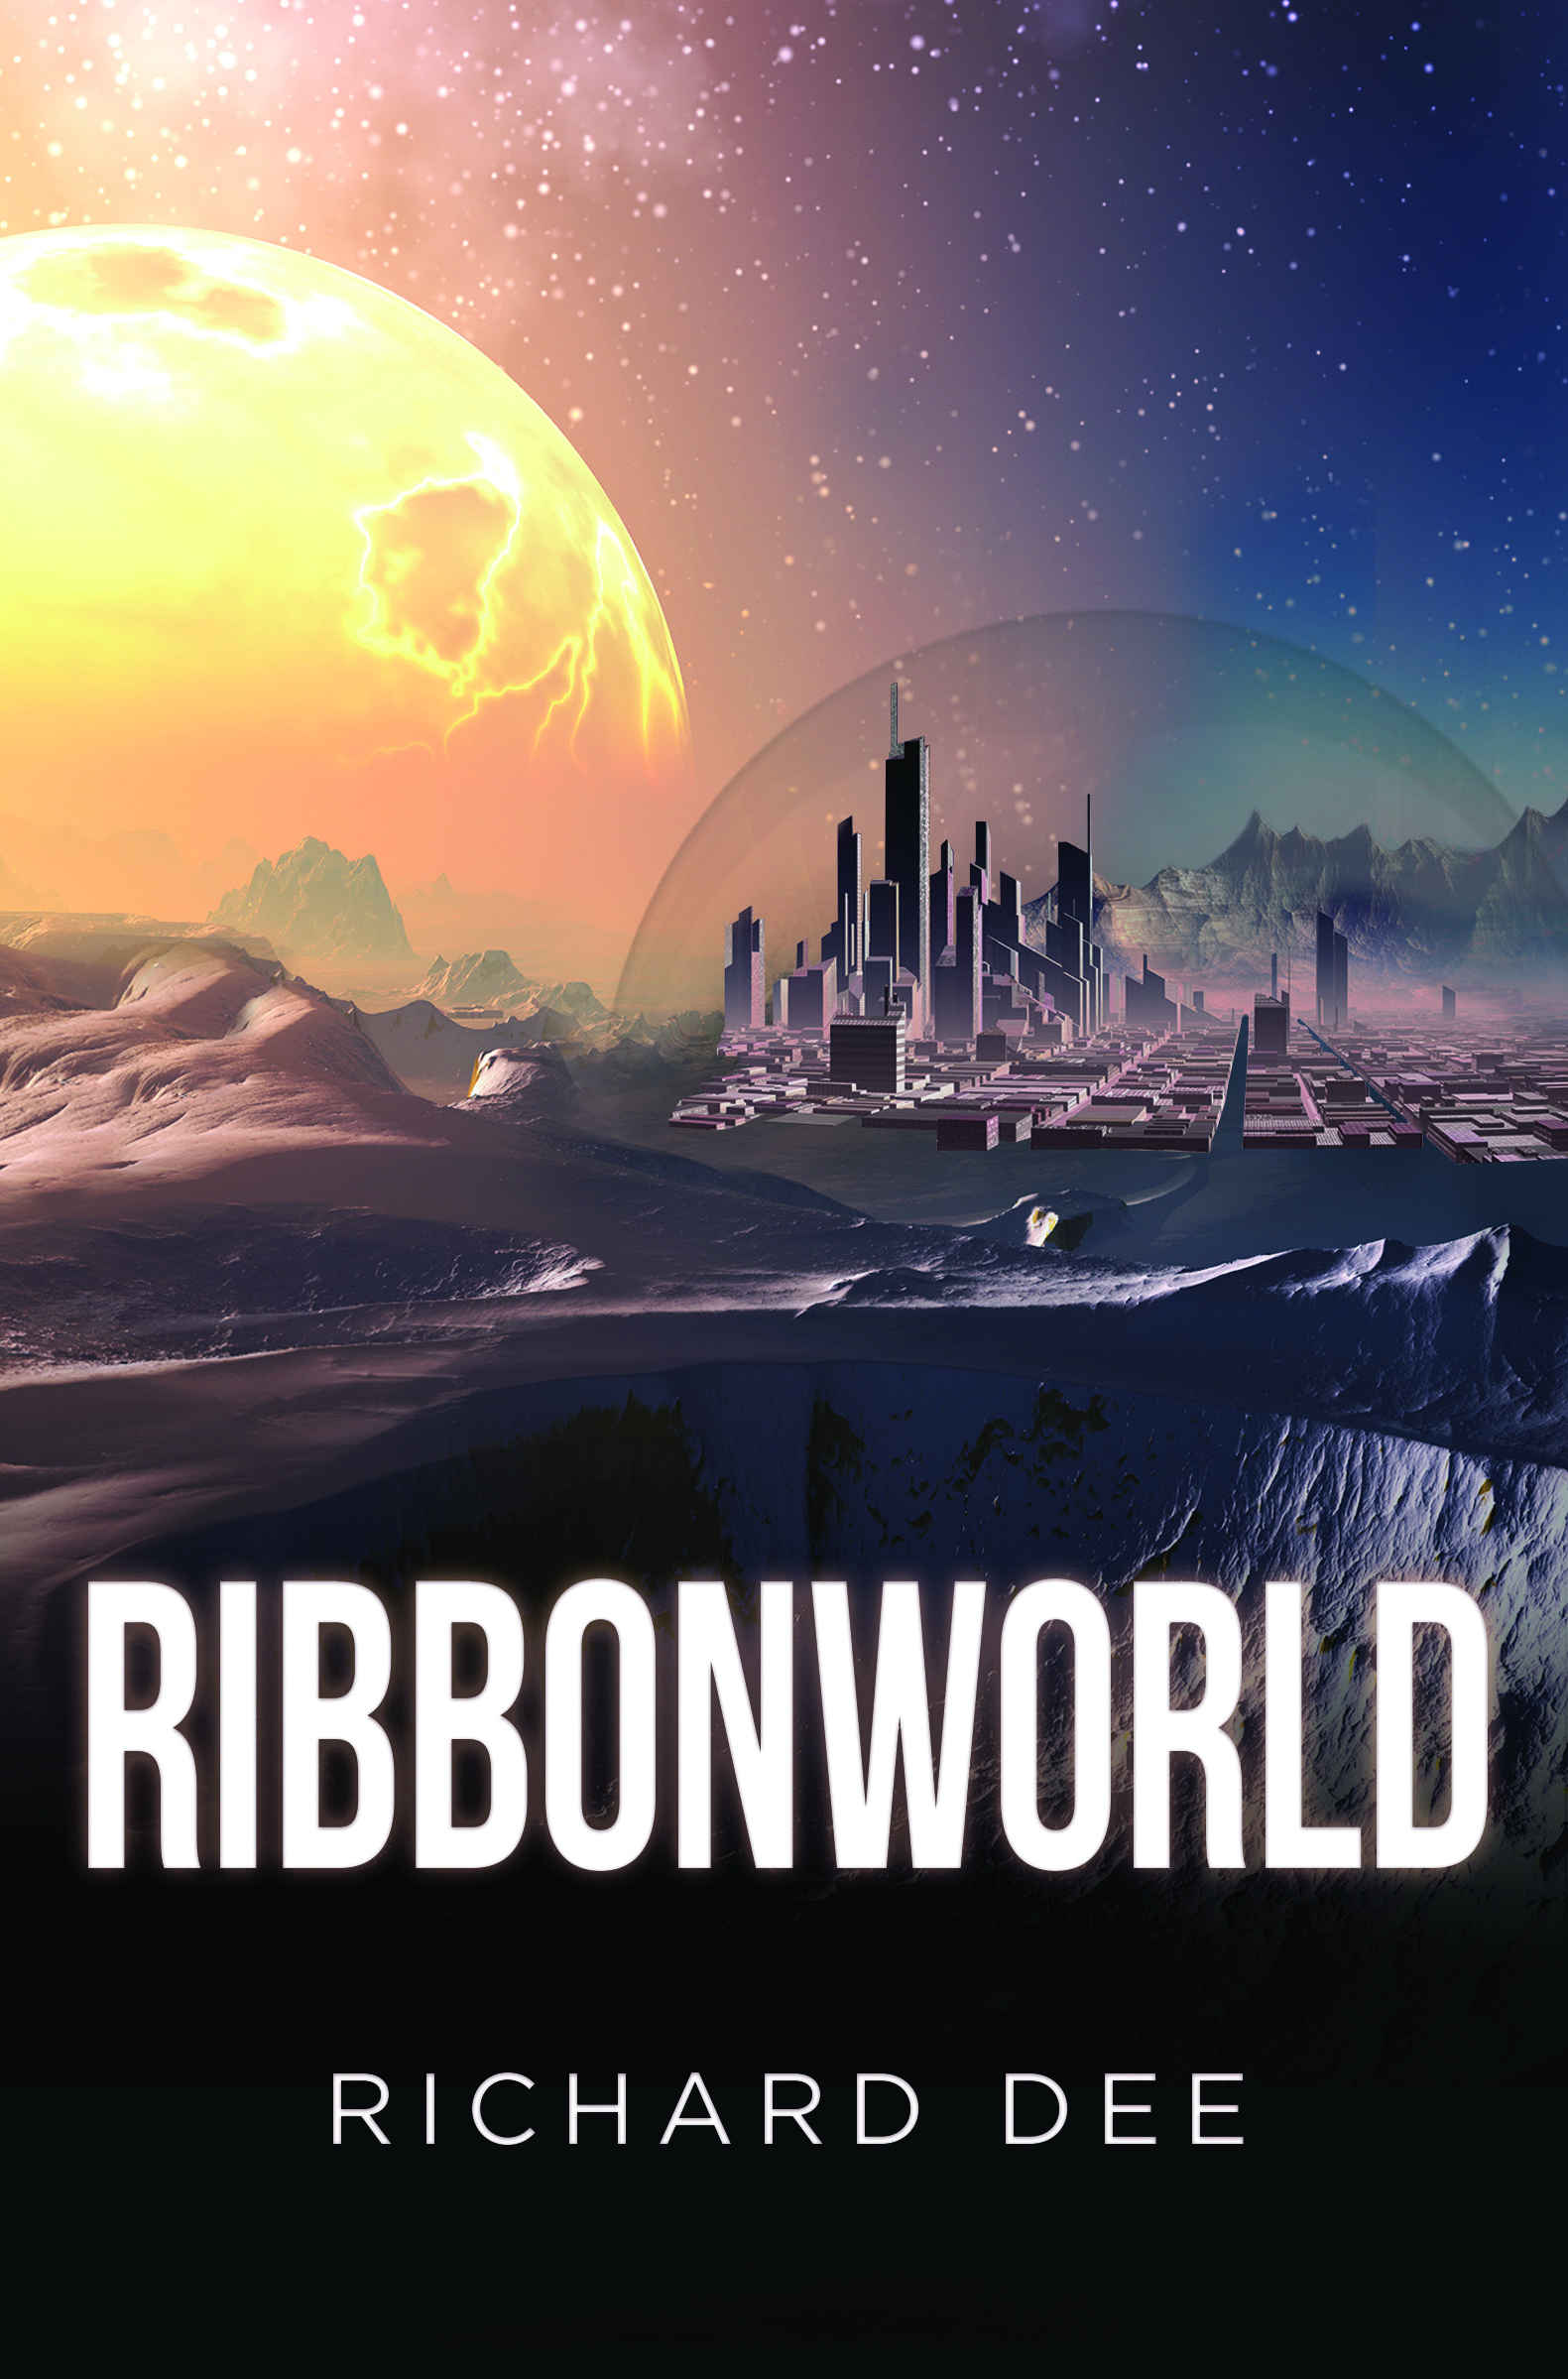 Ribbonworld_high res front cover